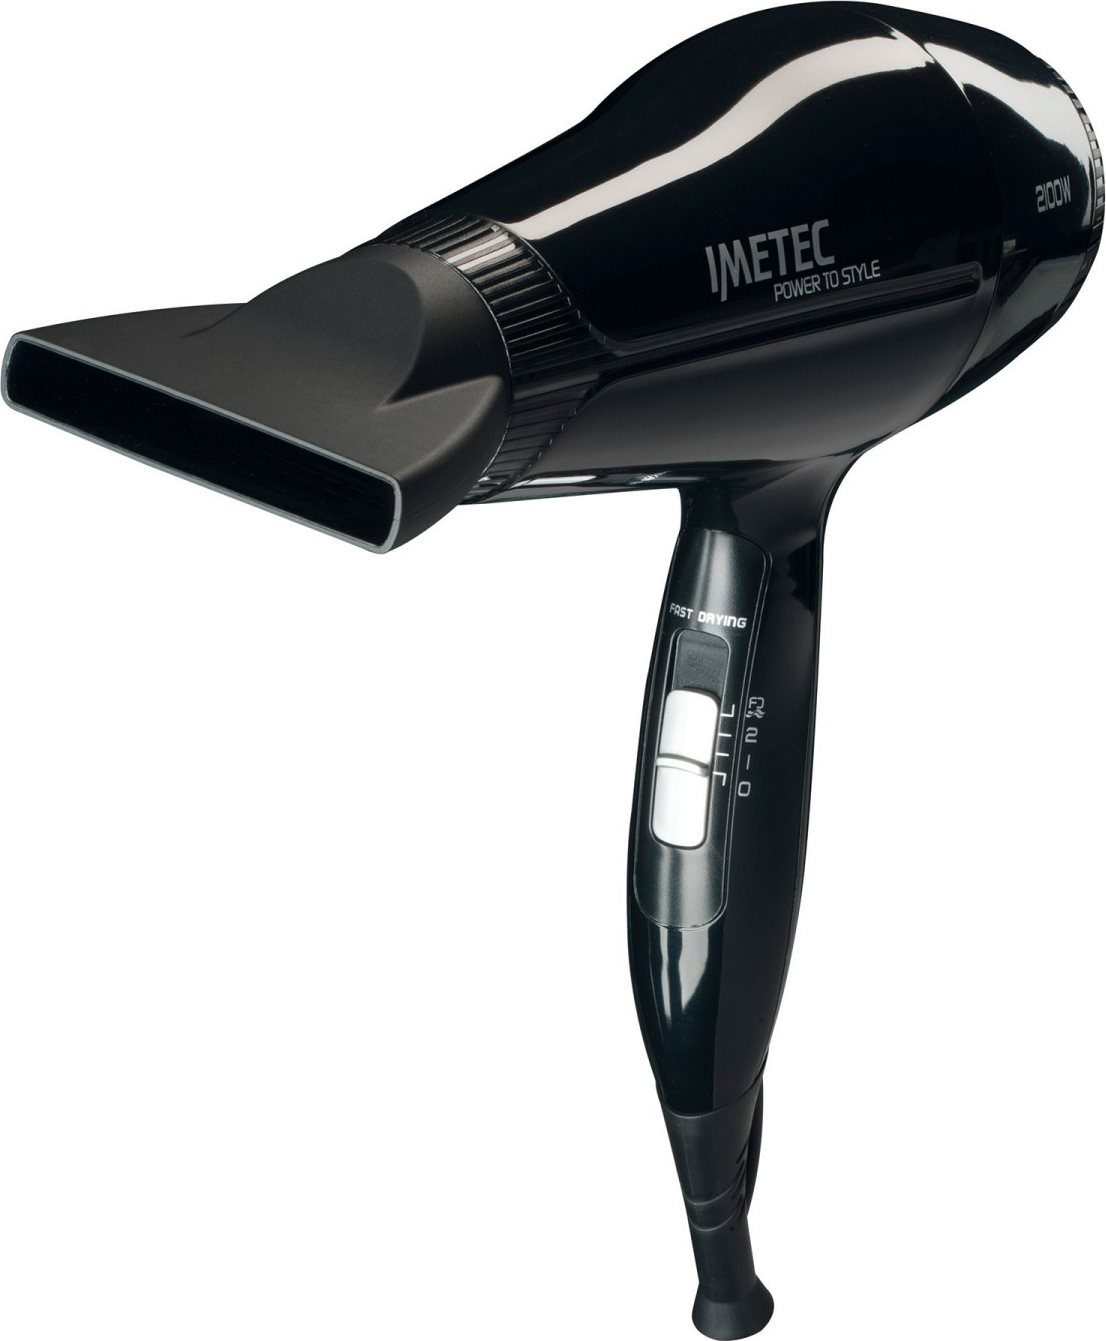 Imetec 11370 Phon Asciugacapelli 2100 W Fast Drying  Power to Style S8 2100